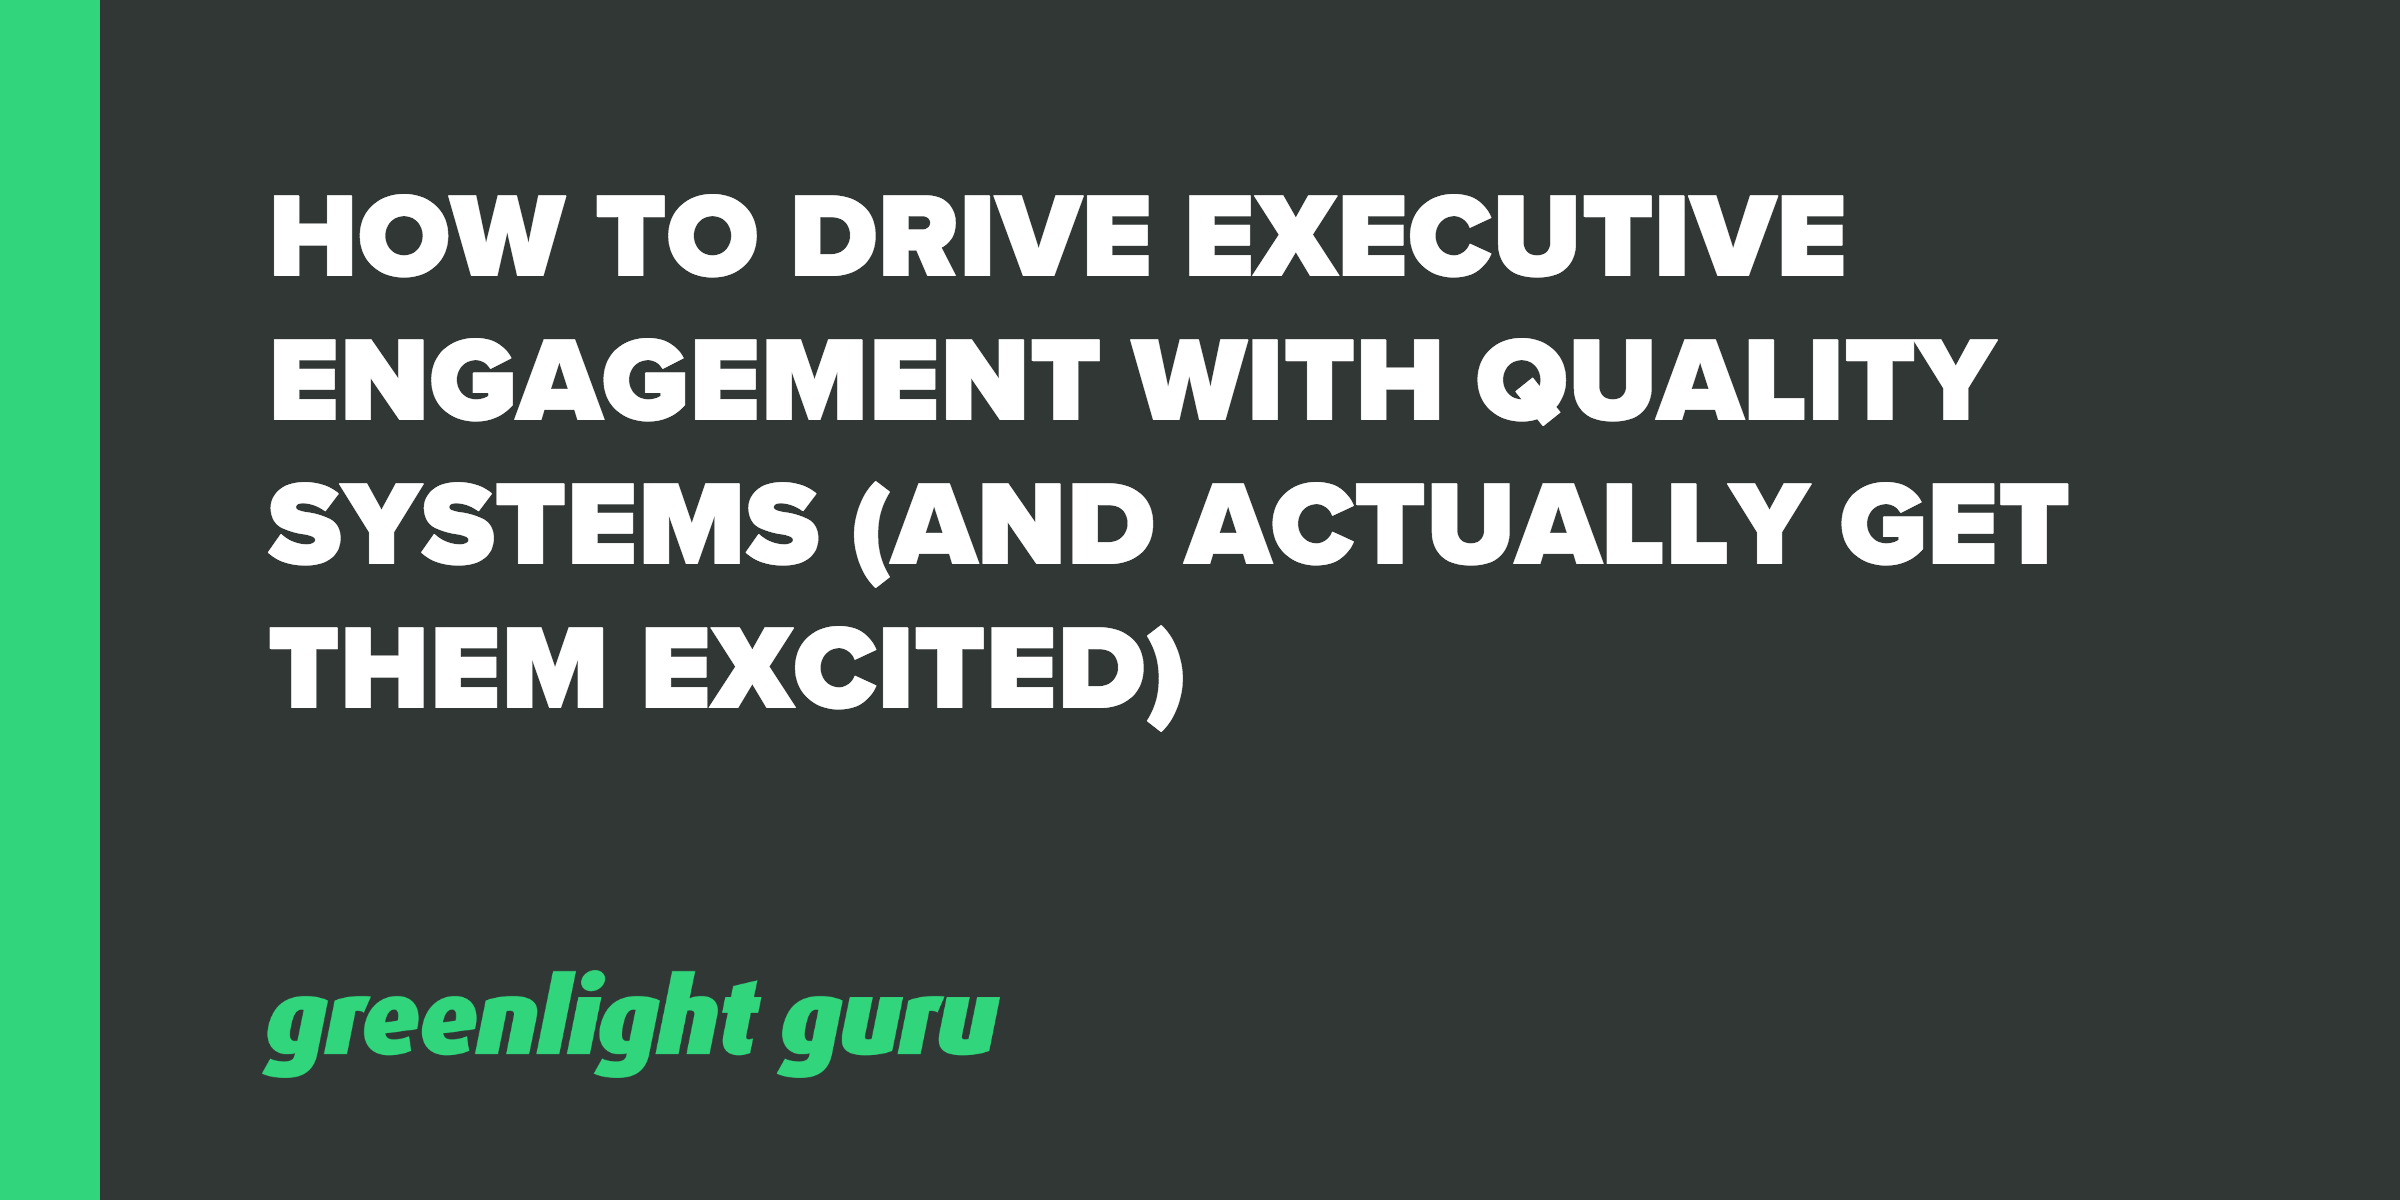 How To Drive Executive Engagement With Quality Systems (and actually get them excited about it) - Featured Image